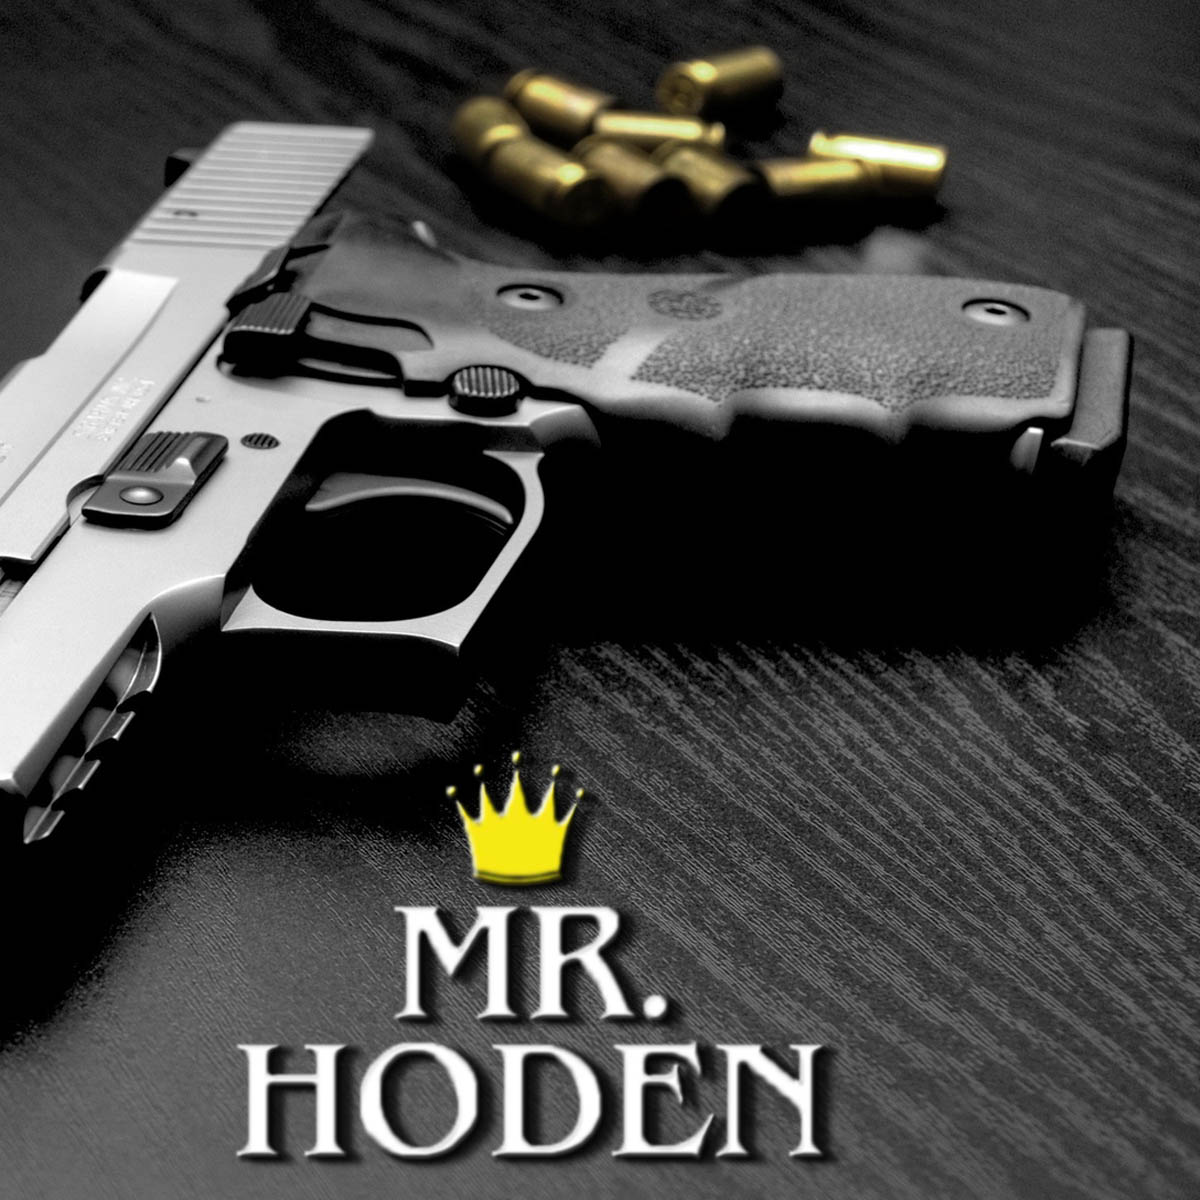 Upcoming: Mr. Hoden - Banger Trap Beat 2018 (Free Beat)